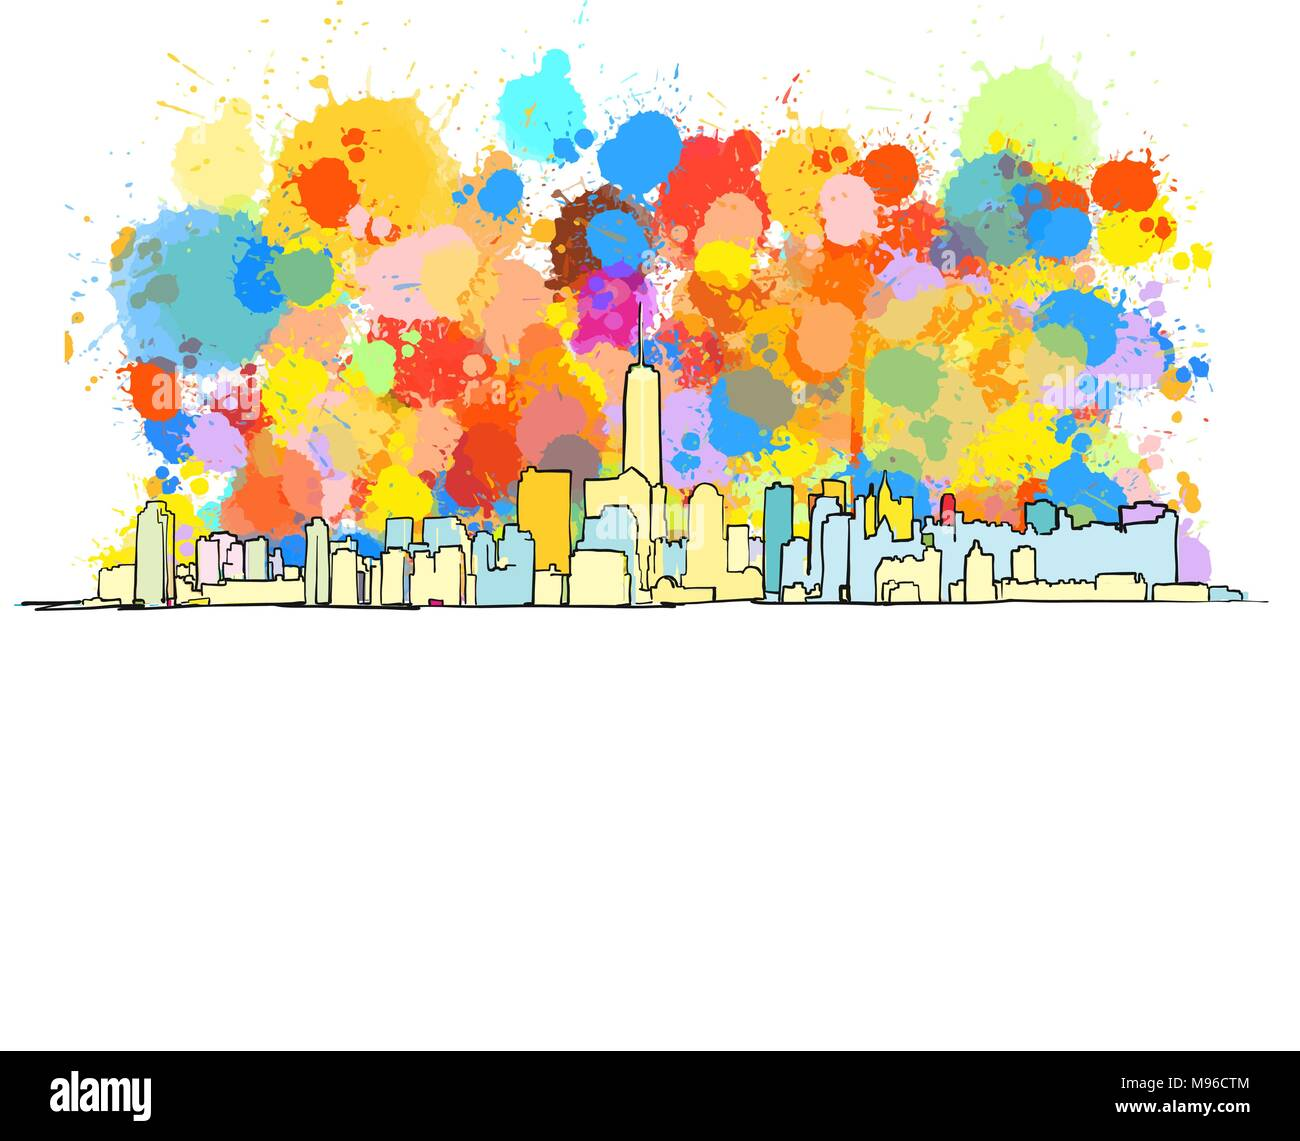 Colorful Skyline of New York City with large ammount of splashes. Vector Drawing. - Stock Image